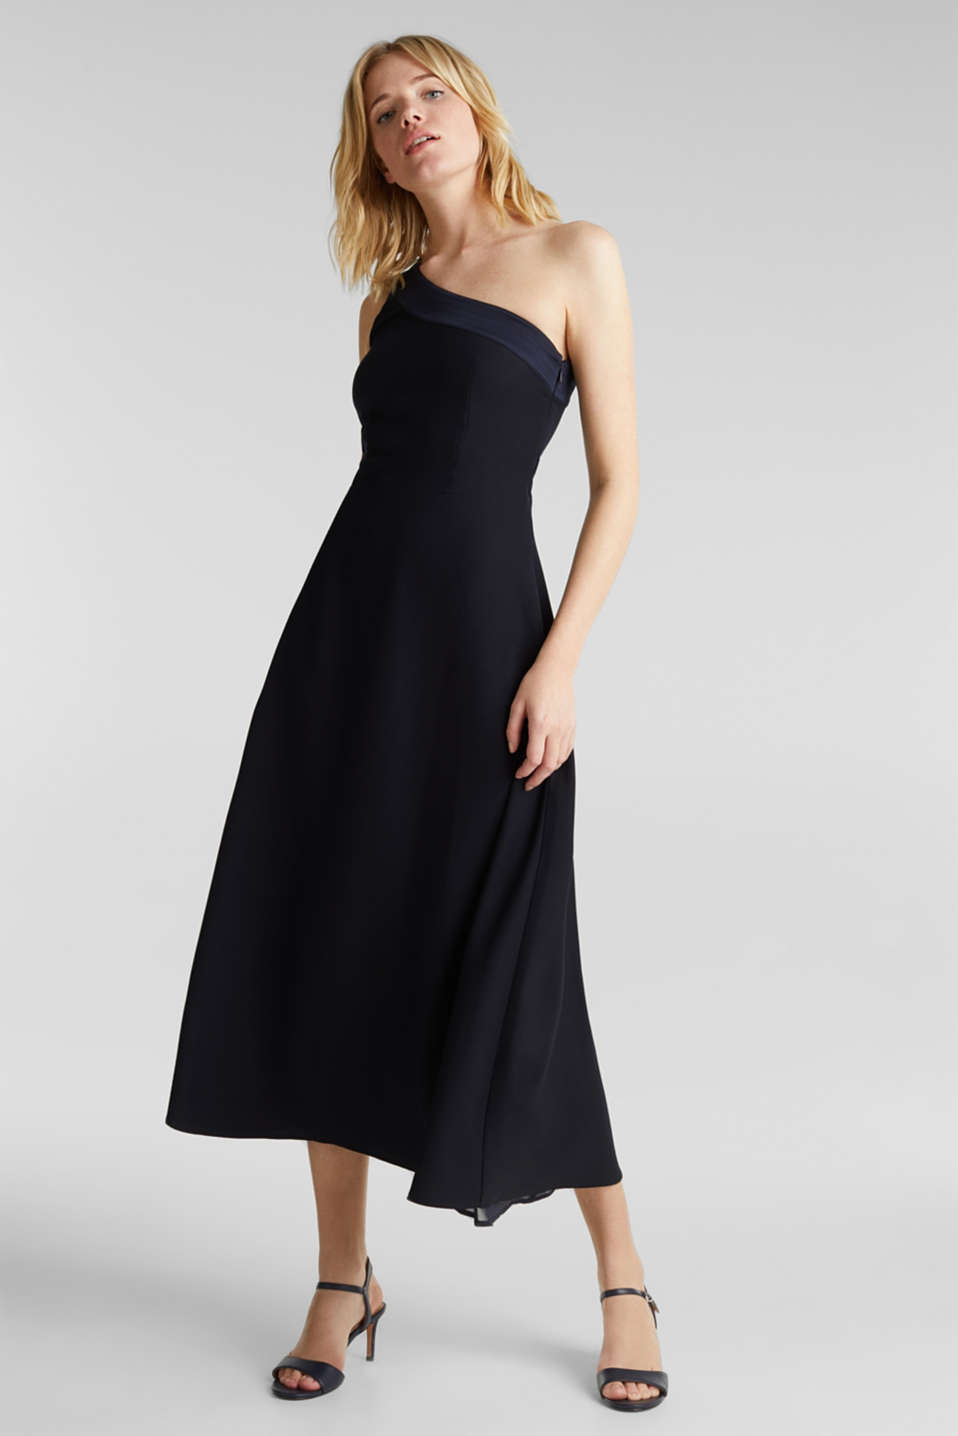 Esprit - Maksihame, one-shoulder-tyyli